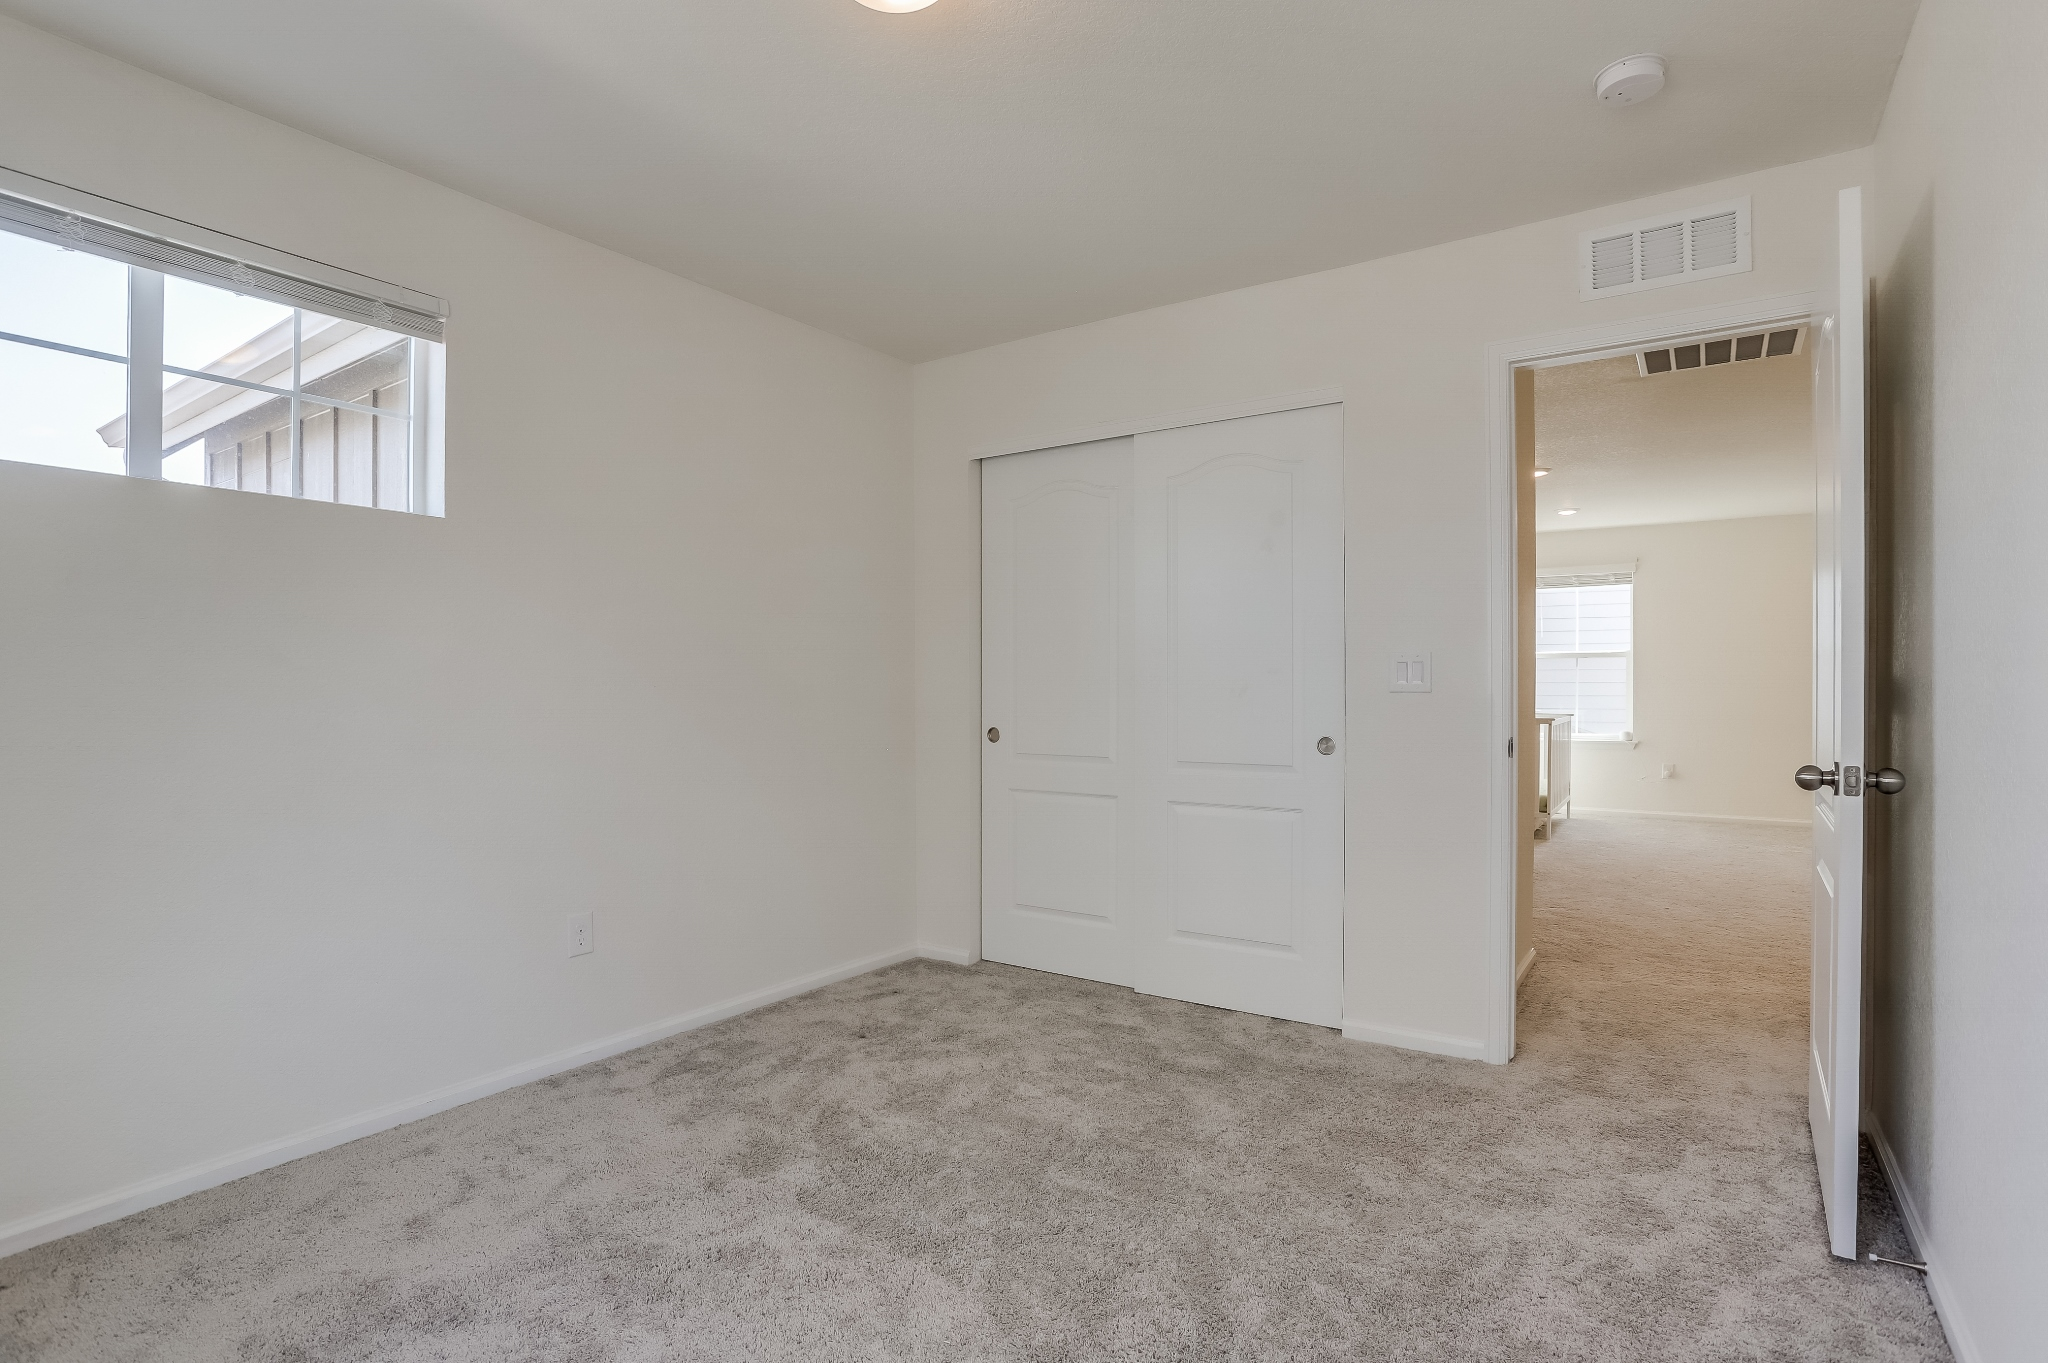 REAL ESTATE LISTING: 12813 Clearview St Firestone Bedroom #2